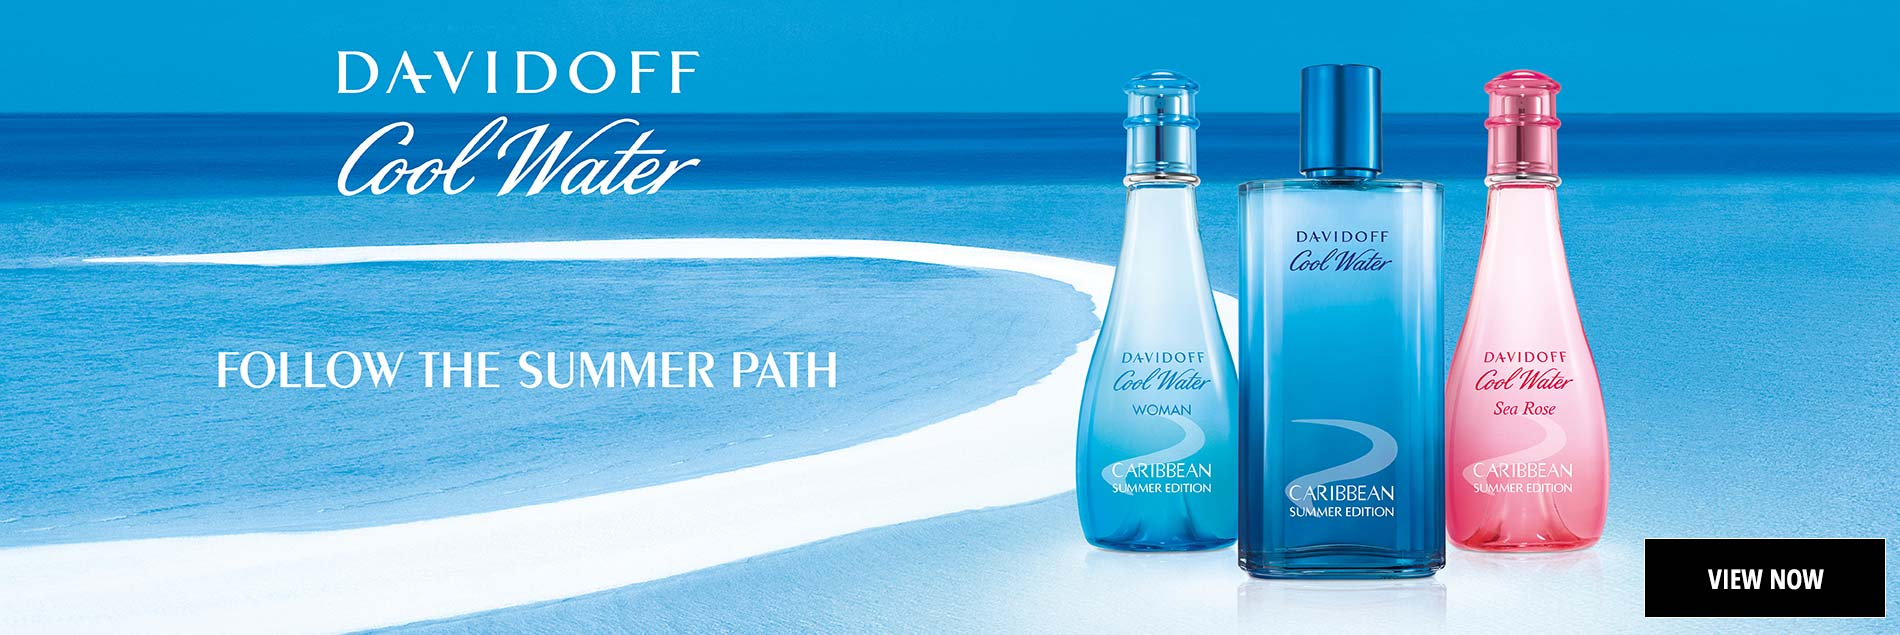 Davidoff Cool Water Woman Sea Rose Caribbean Summer Edition Davidoff  perfumy - to perfumy dla kobiet 2018